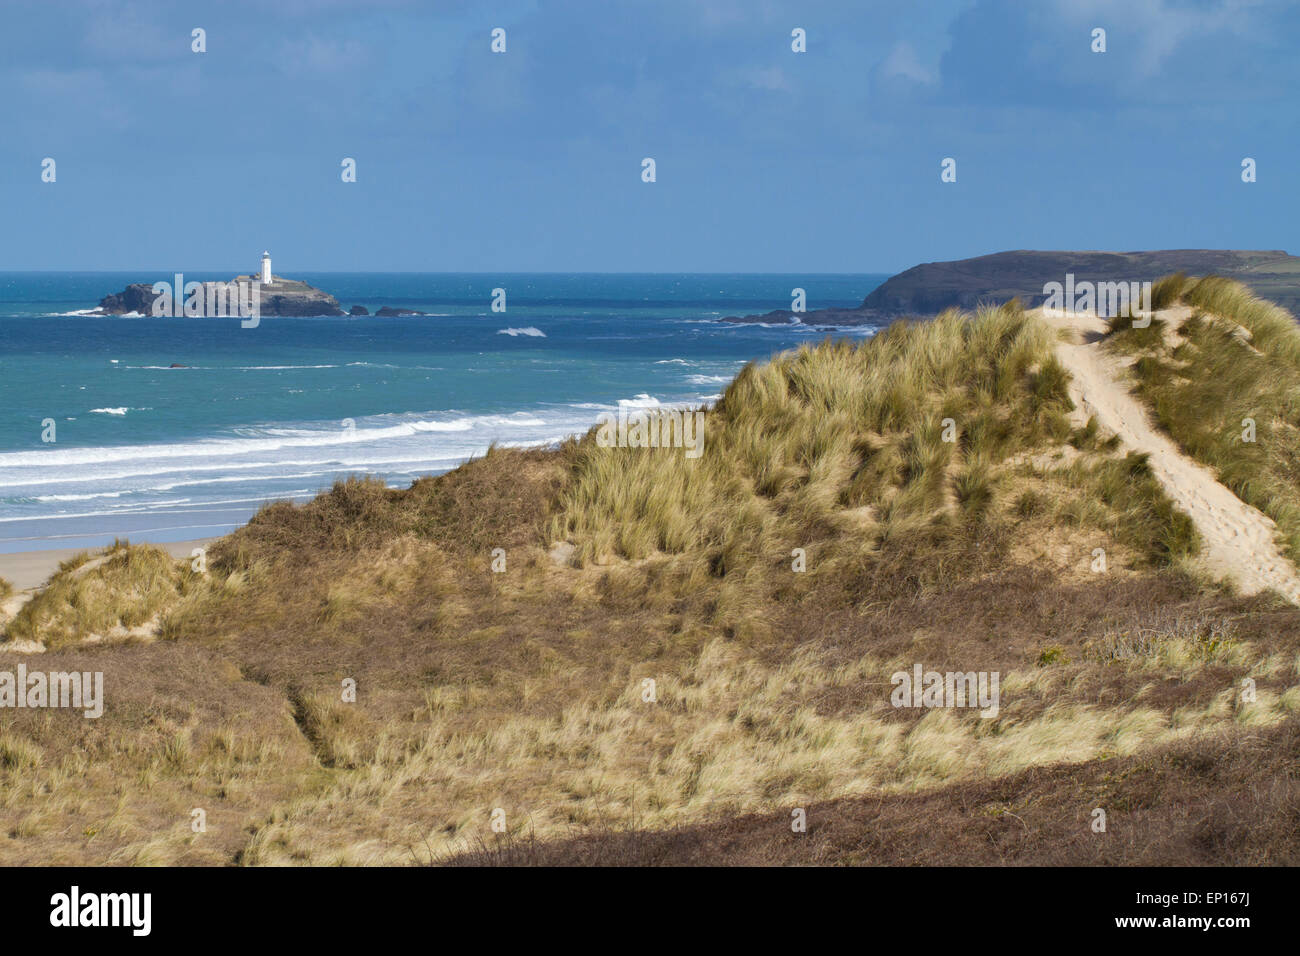 View to Godrevy Island and Godrevy Point from Upton Towans NNR sand dunes, St. Ives Bay, Cornwall, England. March. - Stock Image